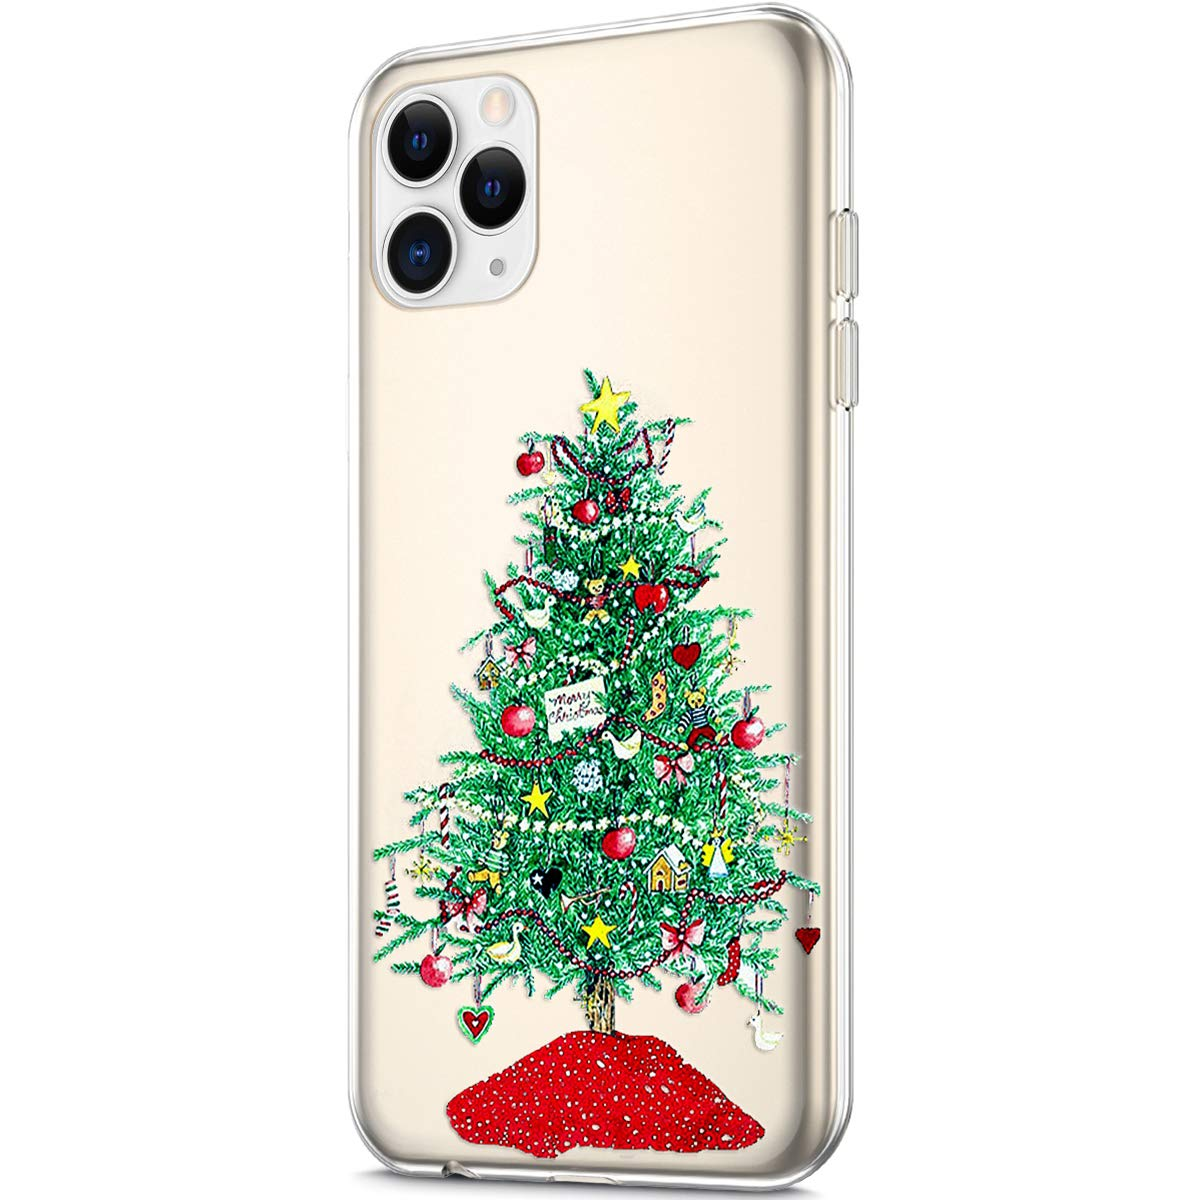 Case for iPhone 11 Pro Max,Crystal Clear Xmas Christmas Snowflake Design Soft TPU Ultra-Thin Transparent Flexible Rubber Gel TPU Case Cover for iPhone 11 Pro Max Silicone Case,Girl Christmas Tree